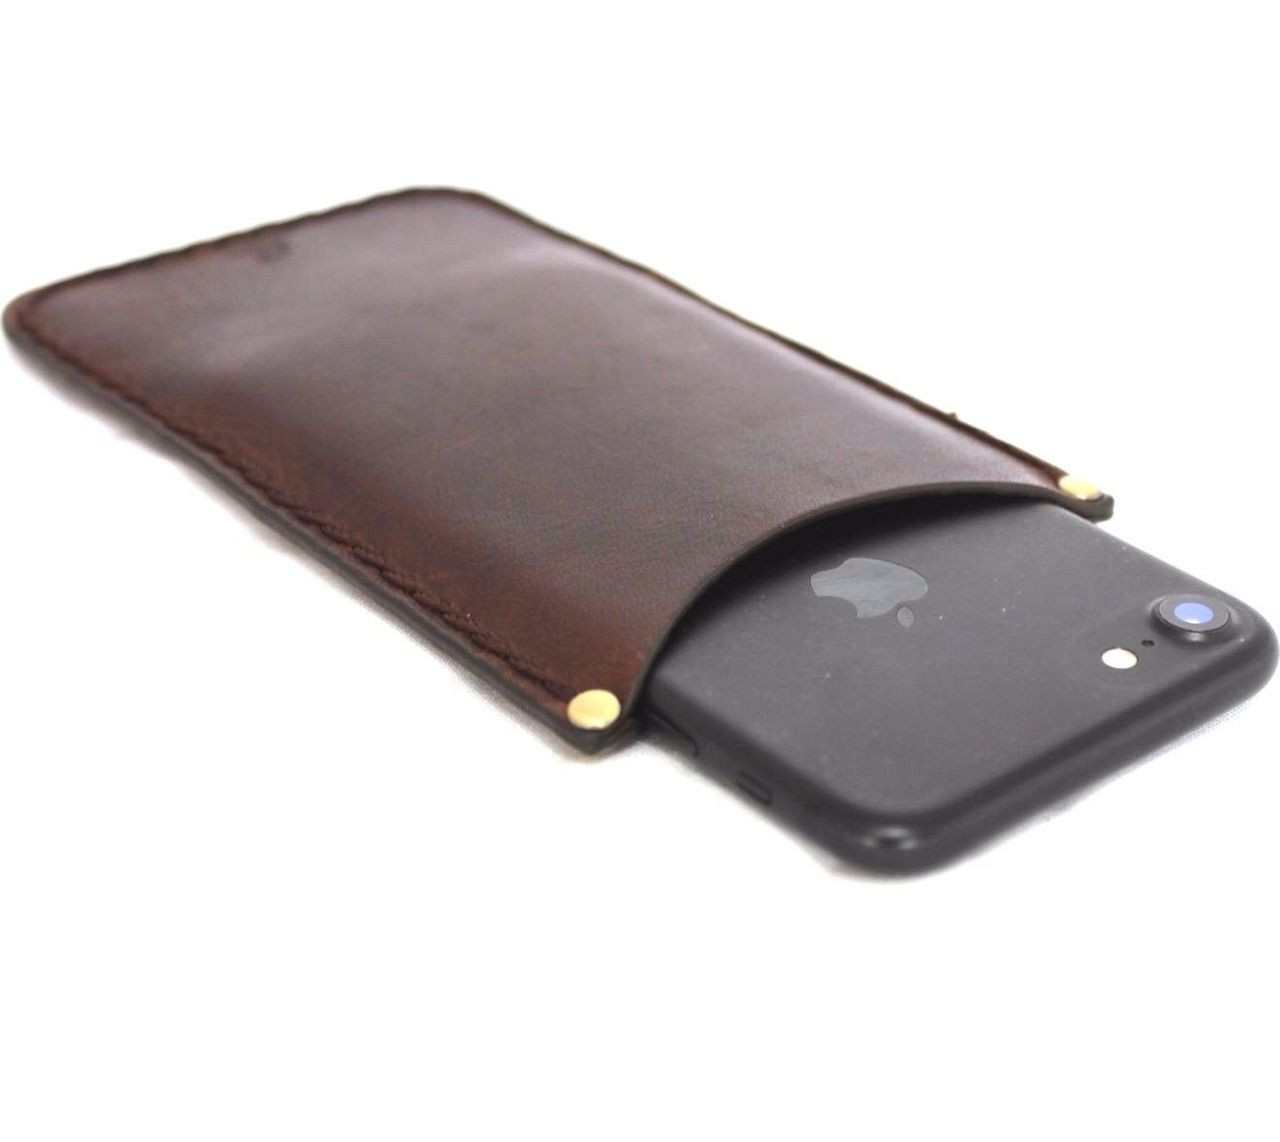 official photos 54248 3062a genuine leather Case for apple iphone 6 6s plus thin cover slim holder Davis